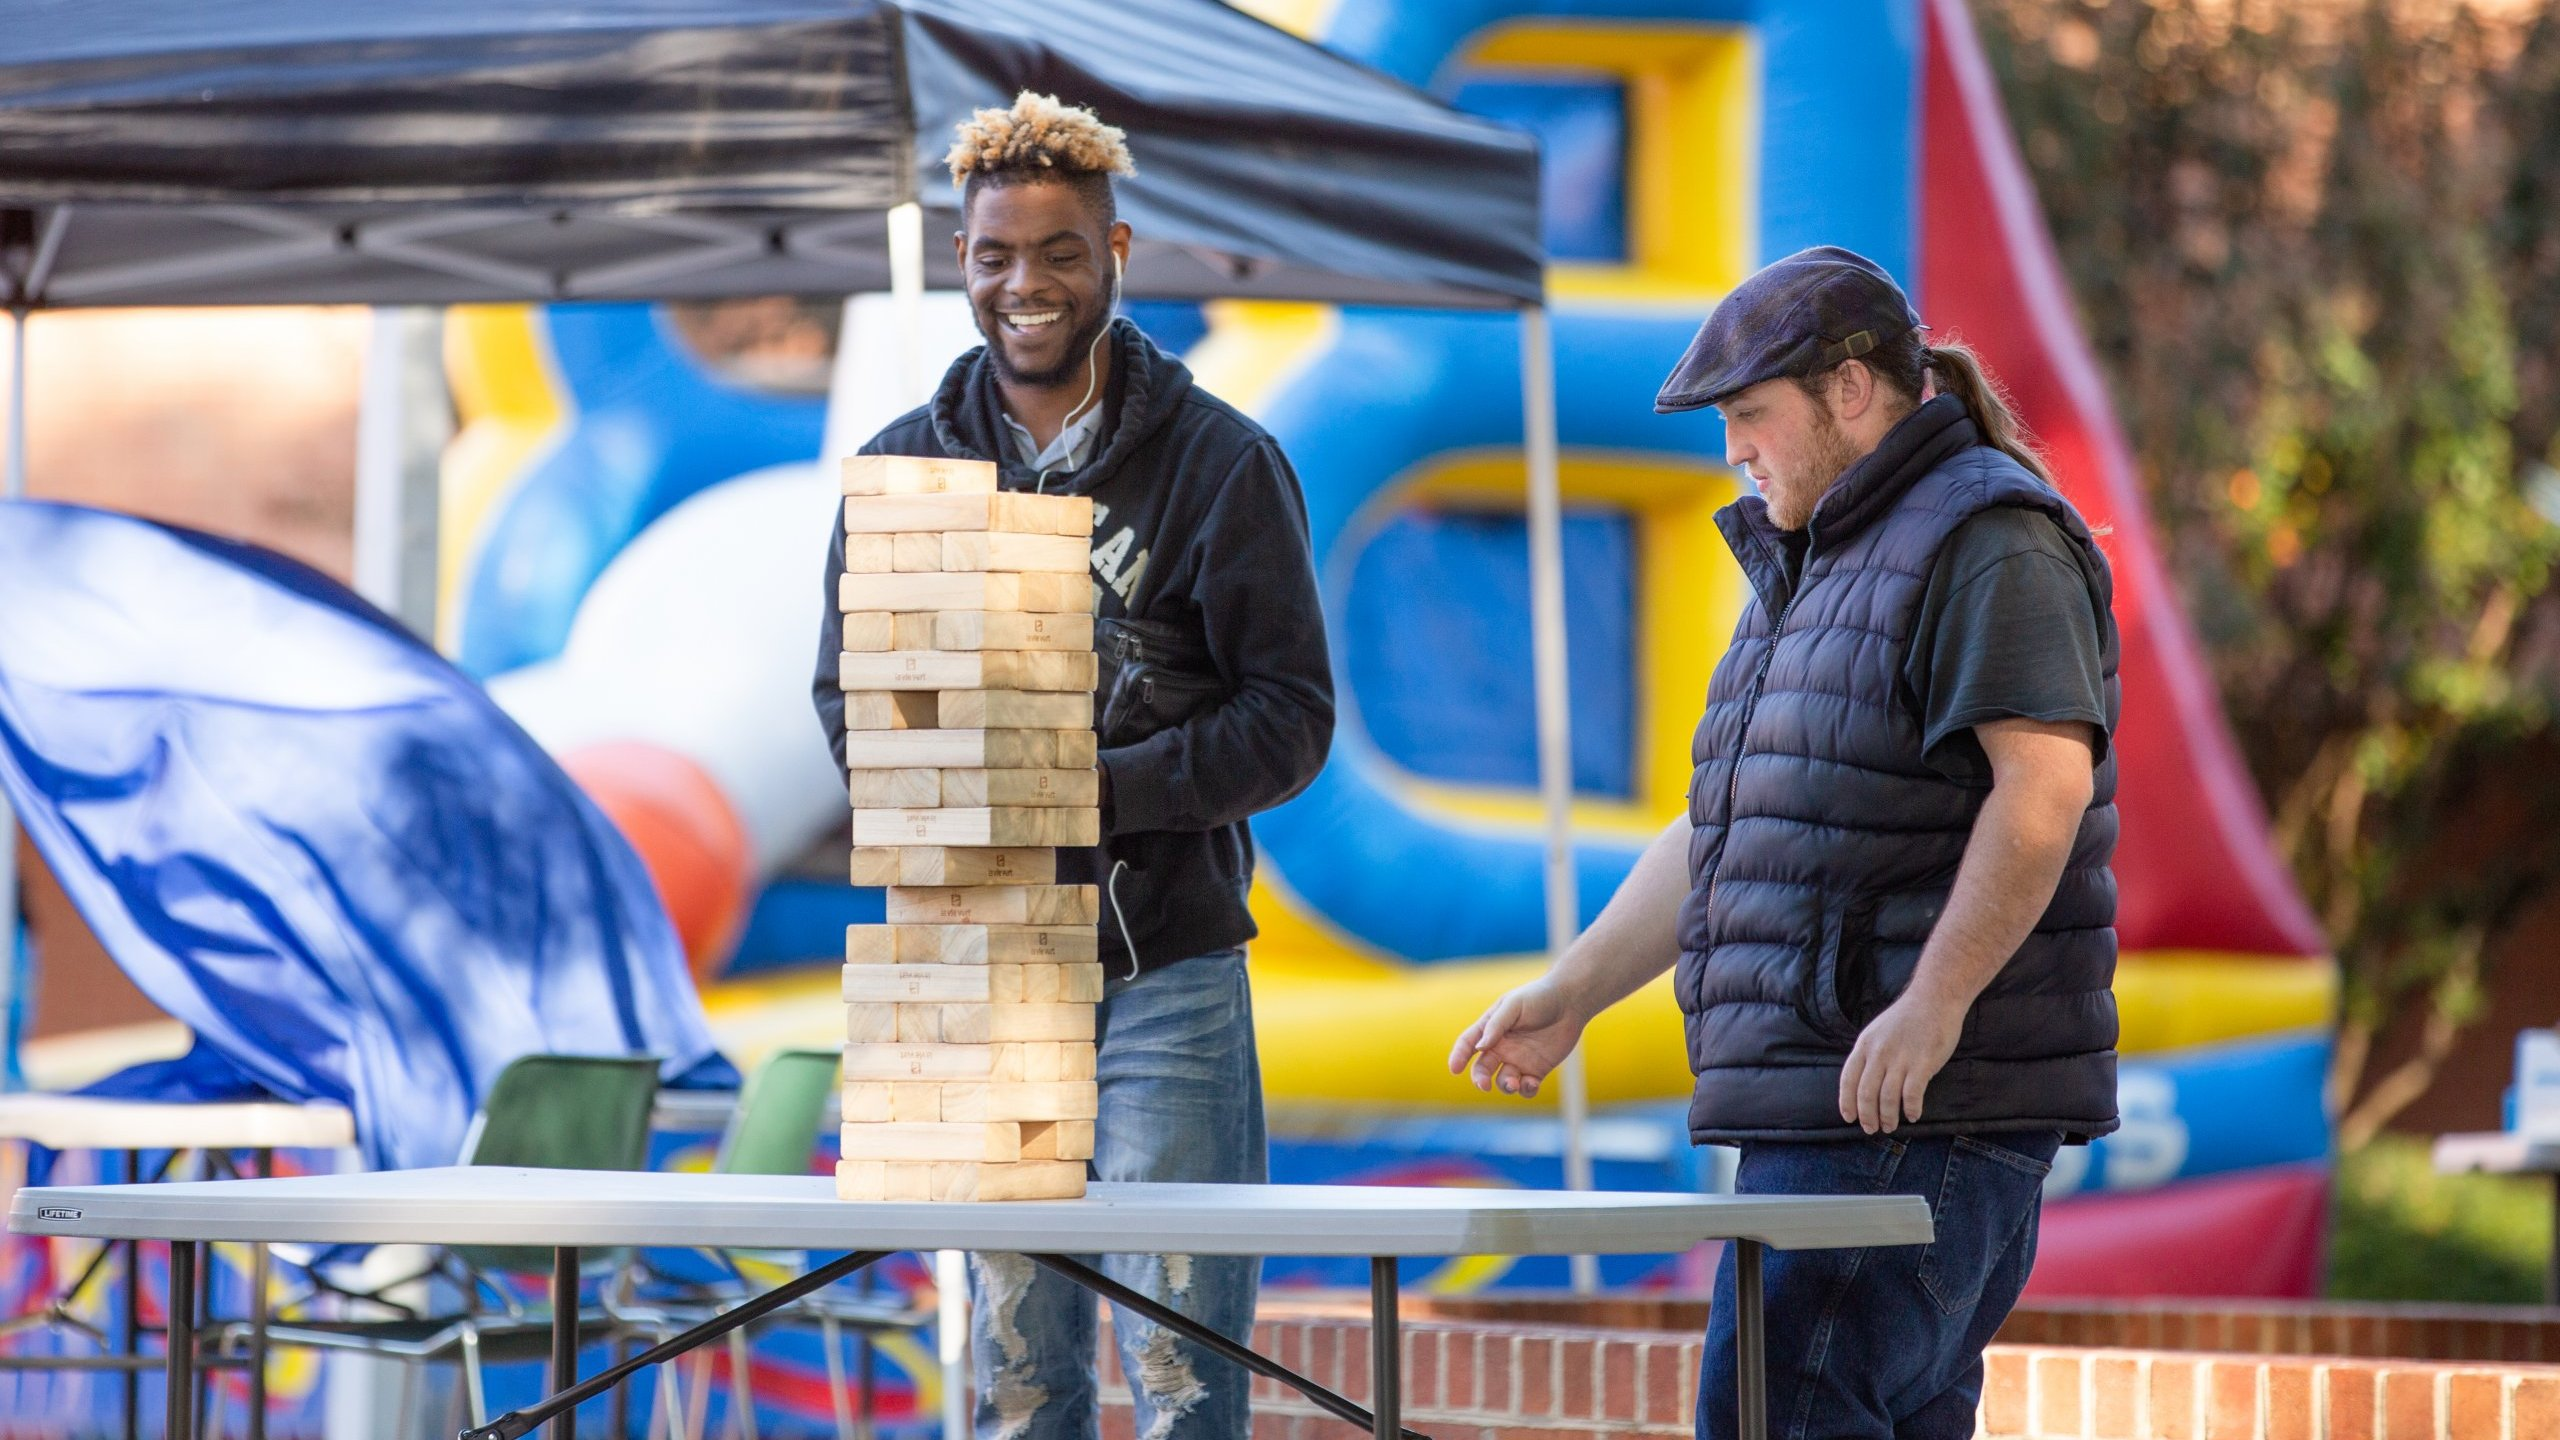 Two college students playing with oversized Jenga blocks